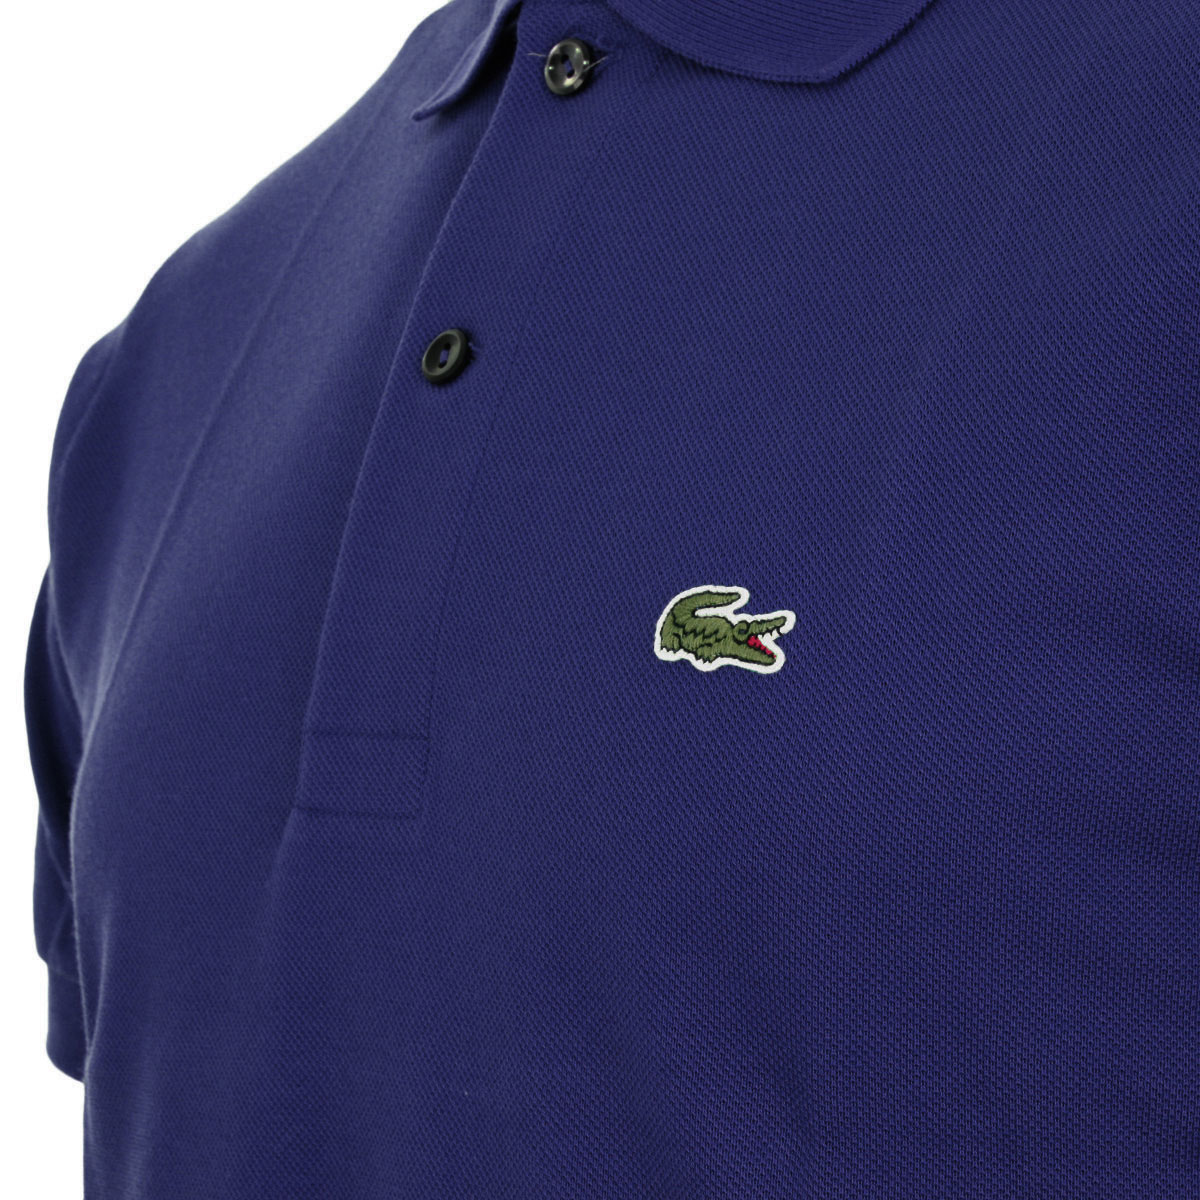 Lacoste-Mens-Classic-Cotton-L1212-Short-Sleeve-Polo-Shirt-26-OFF-RRP thumbnail 24